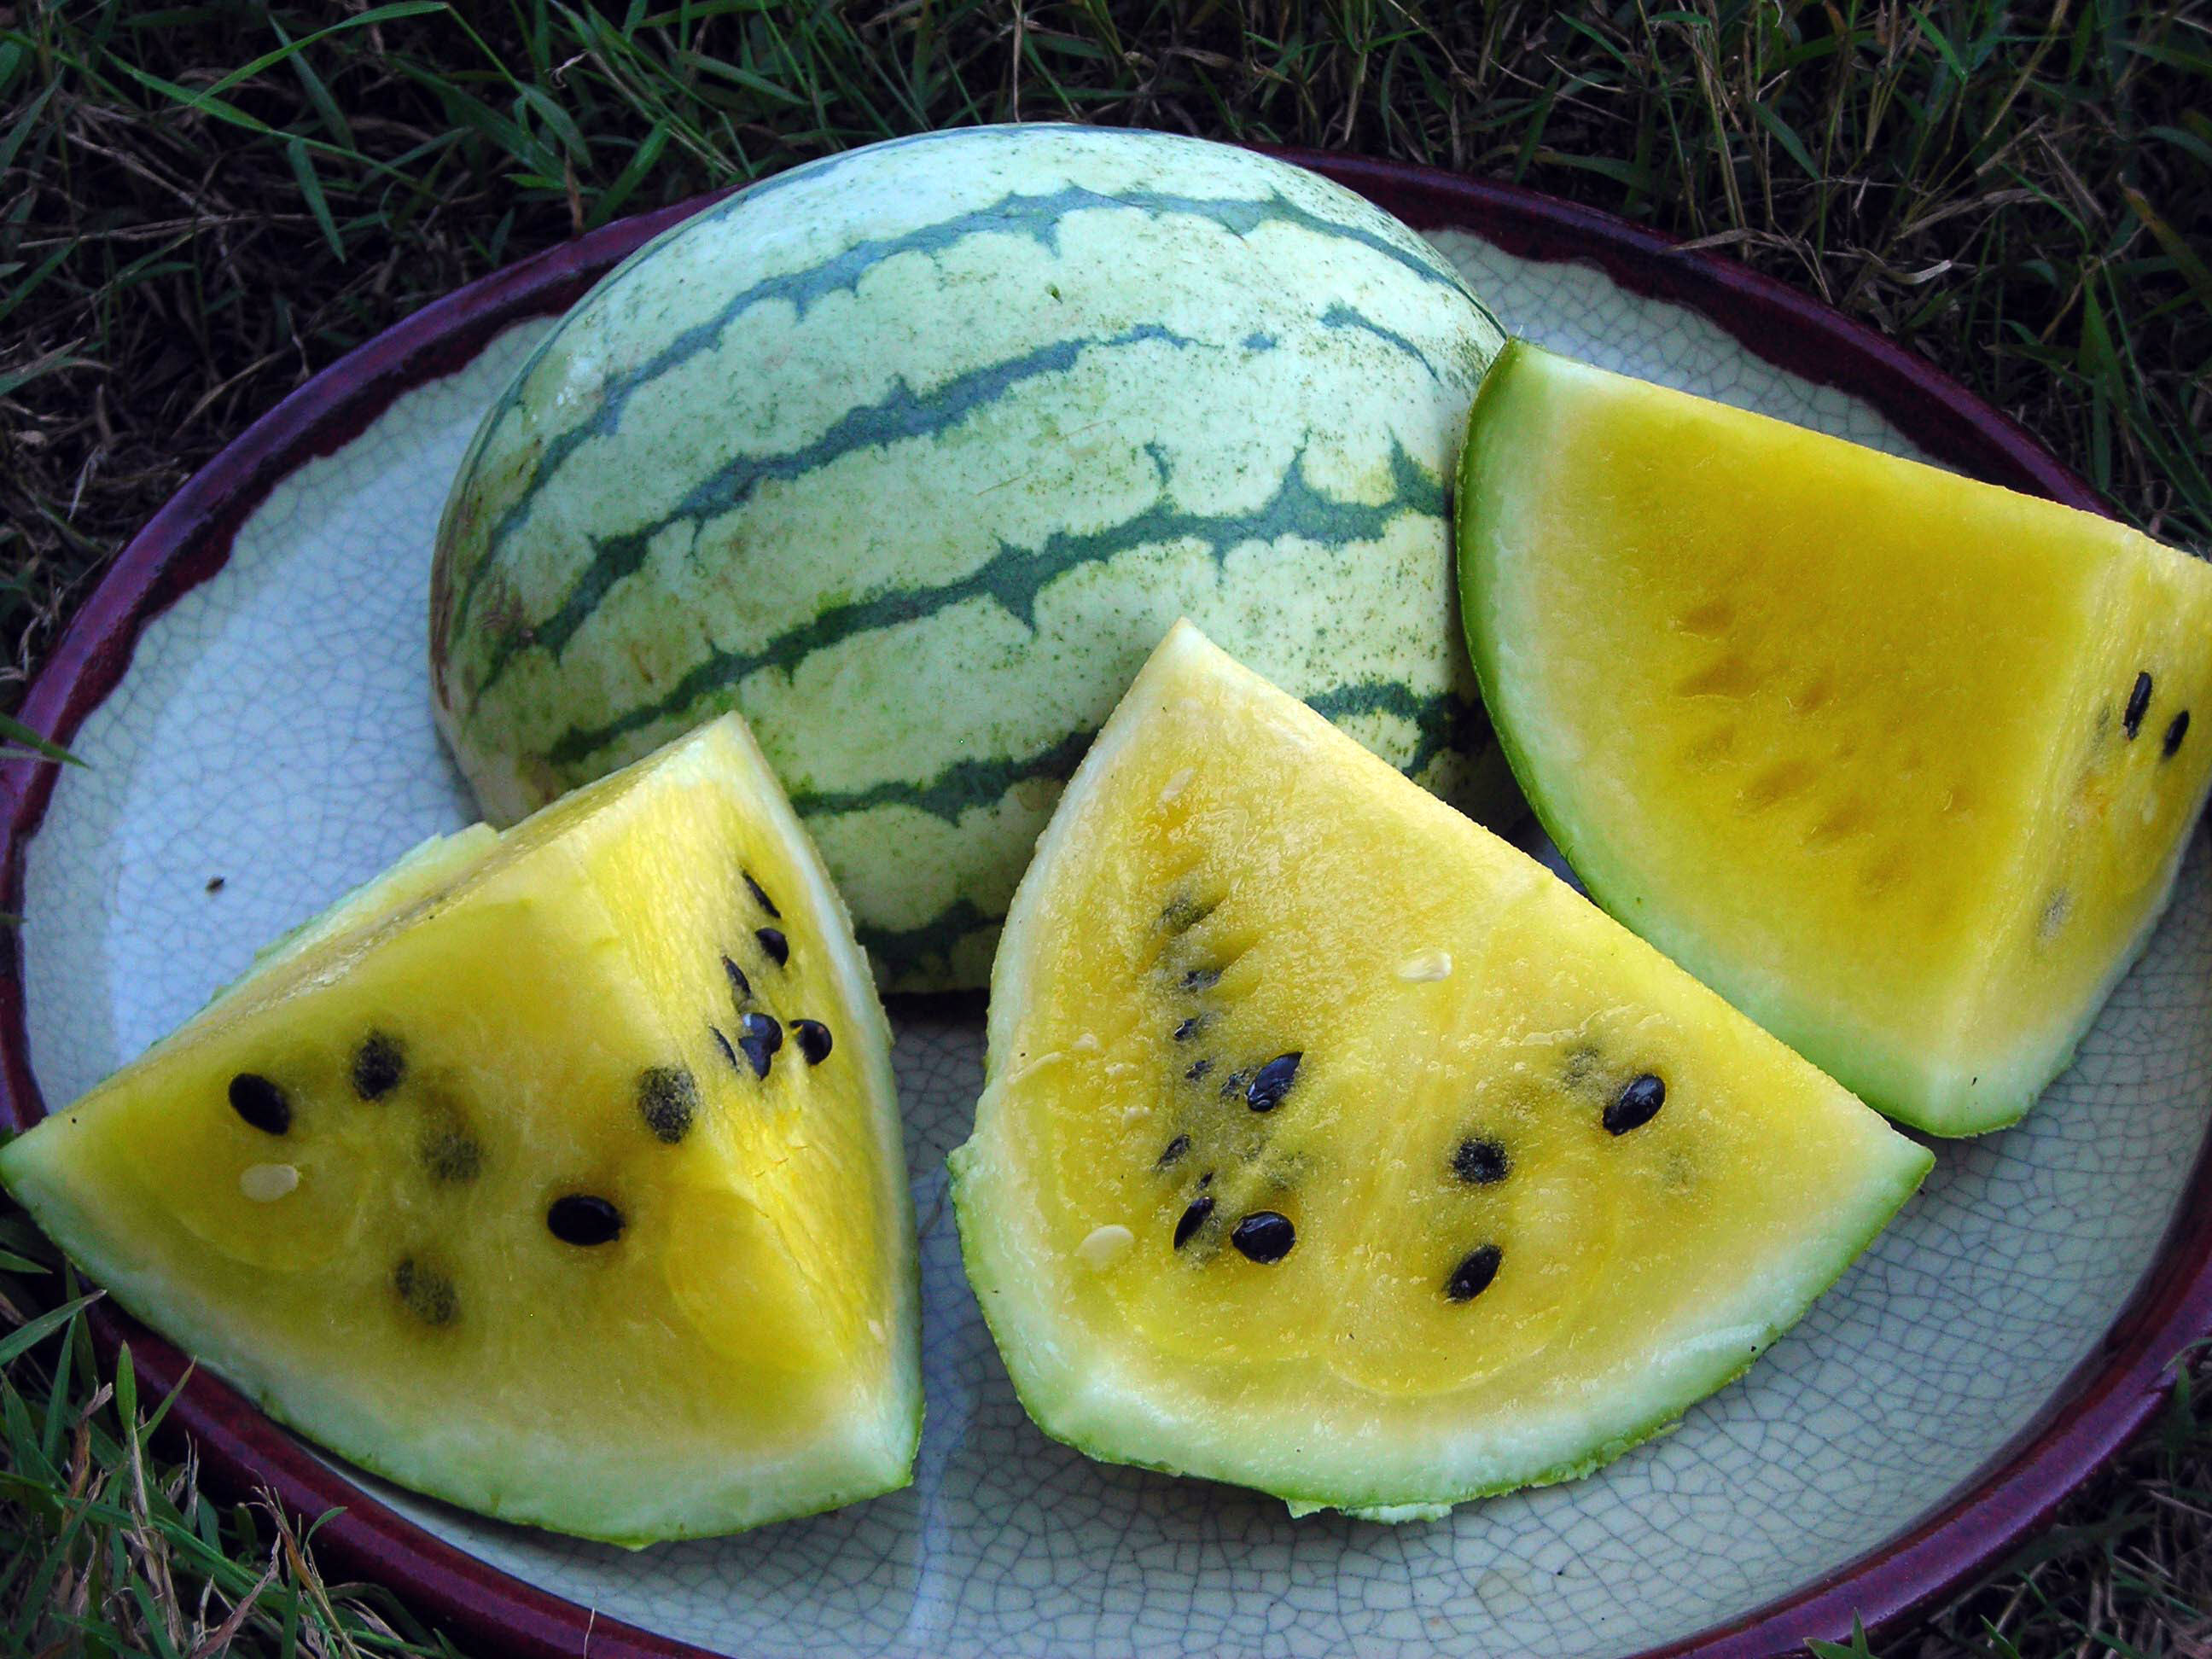 Yellow Watermelon Pictures